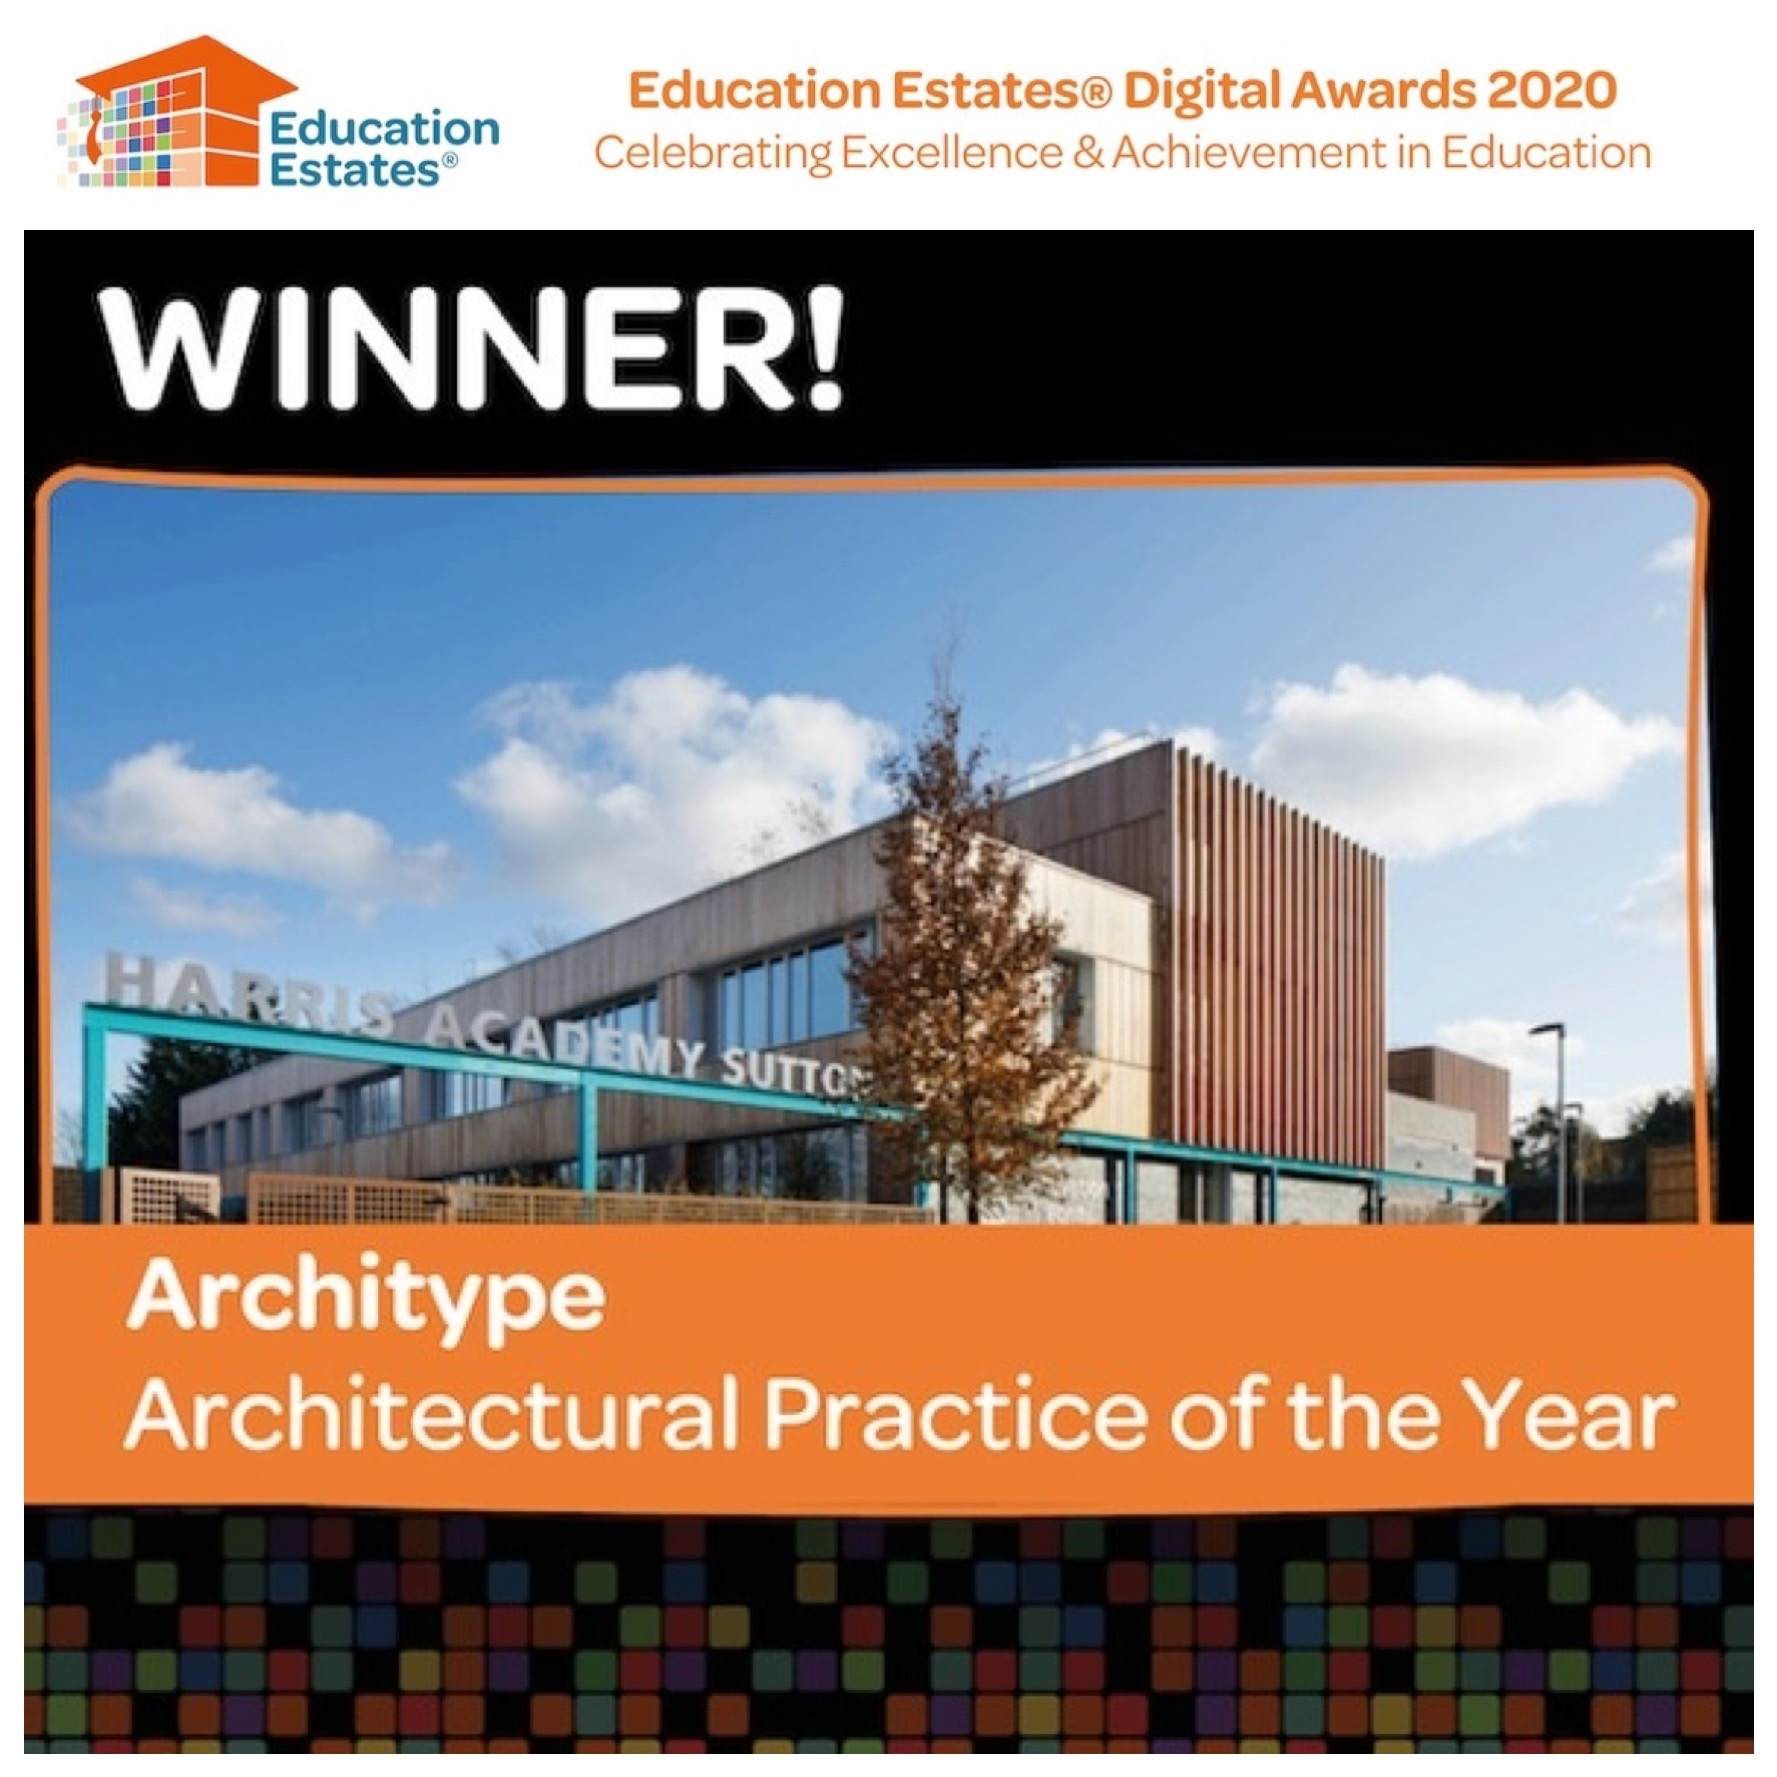 Architype voted Architectural Practice of the Year by Education Estates